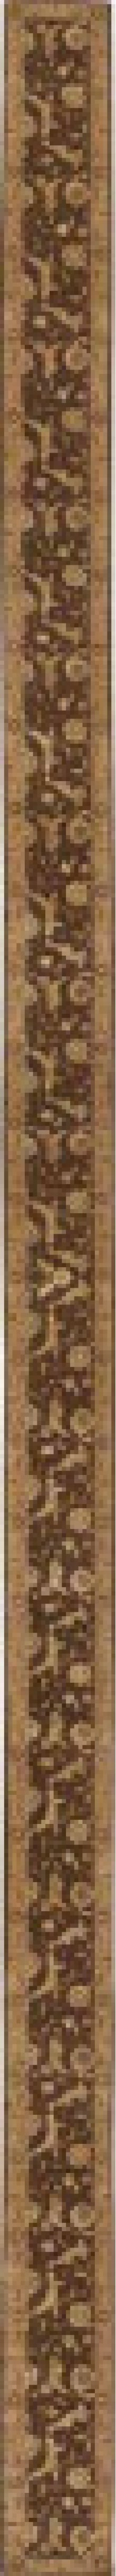 Hard To Find Sizes Nourison 3000 3101 Brown Rectangle Rug 2'6'' X 62'2''